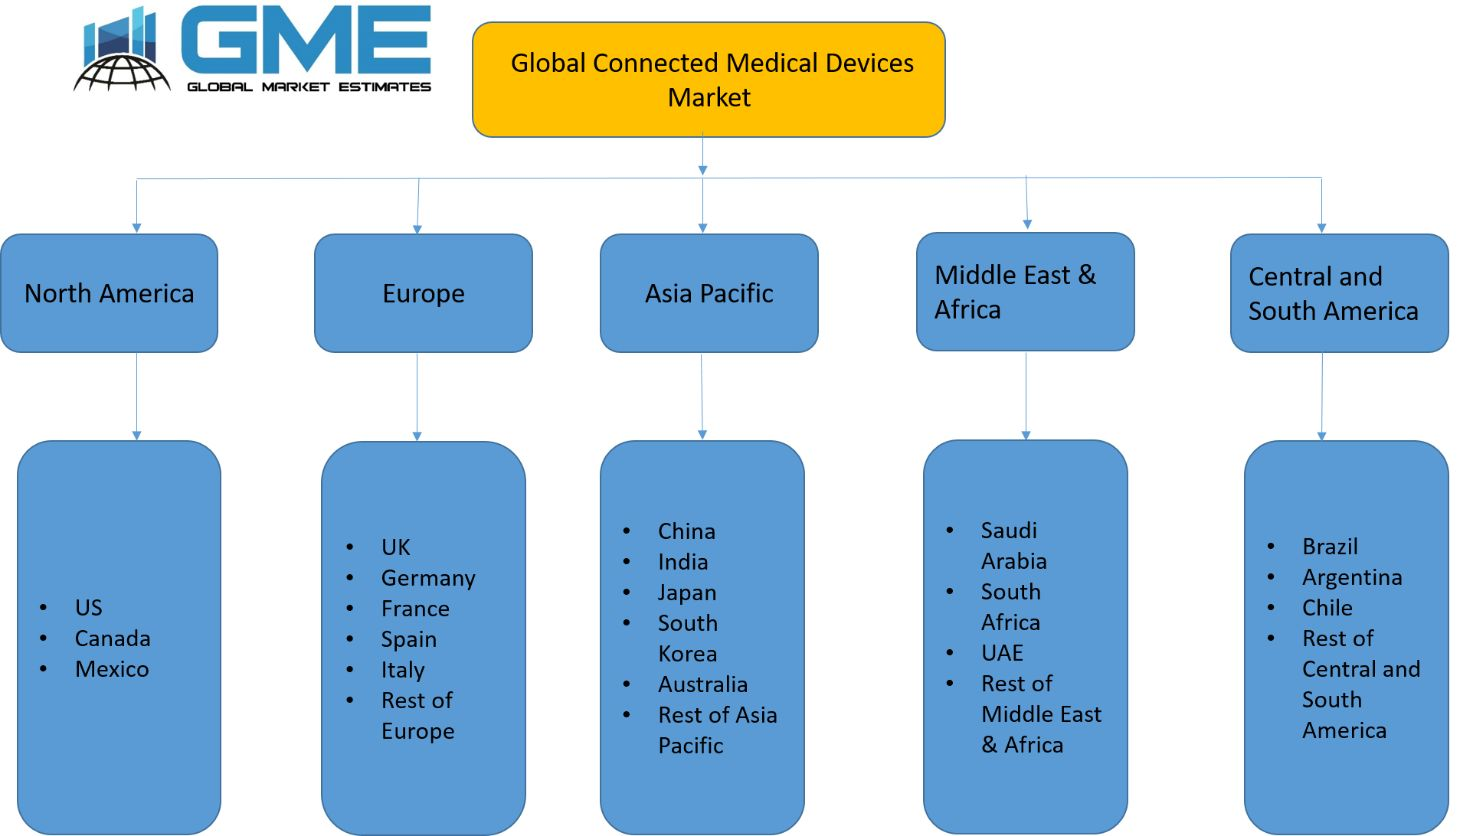 Connected Medical Devices Market - Regional Analysis